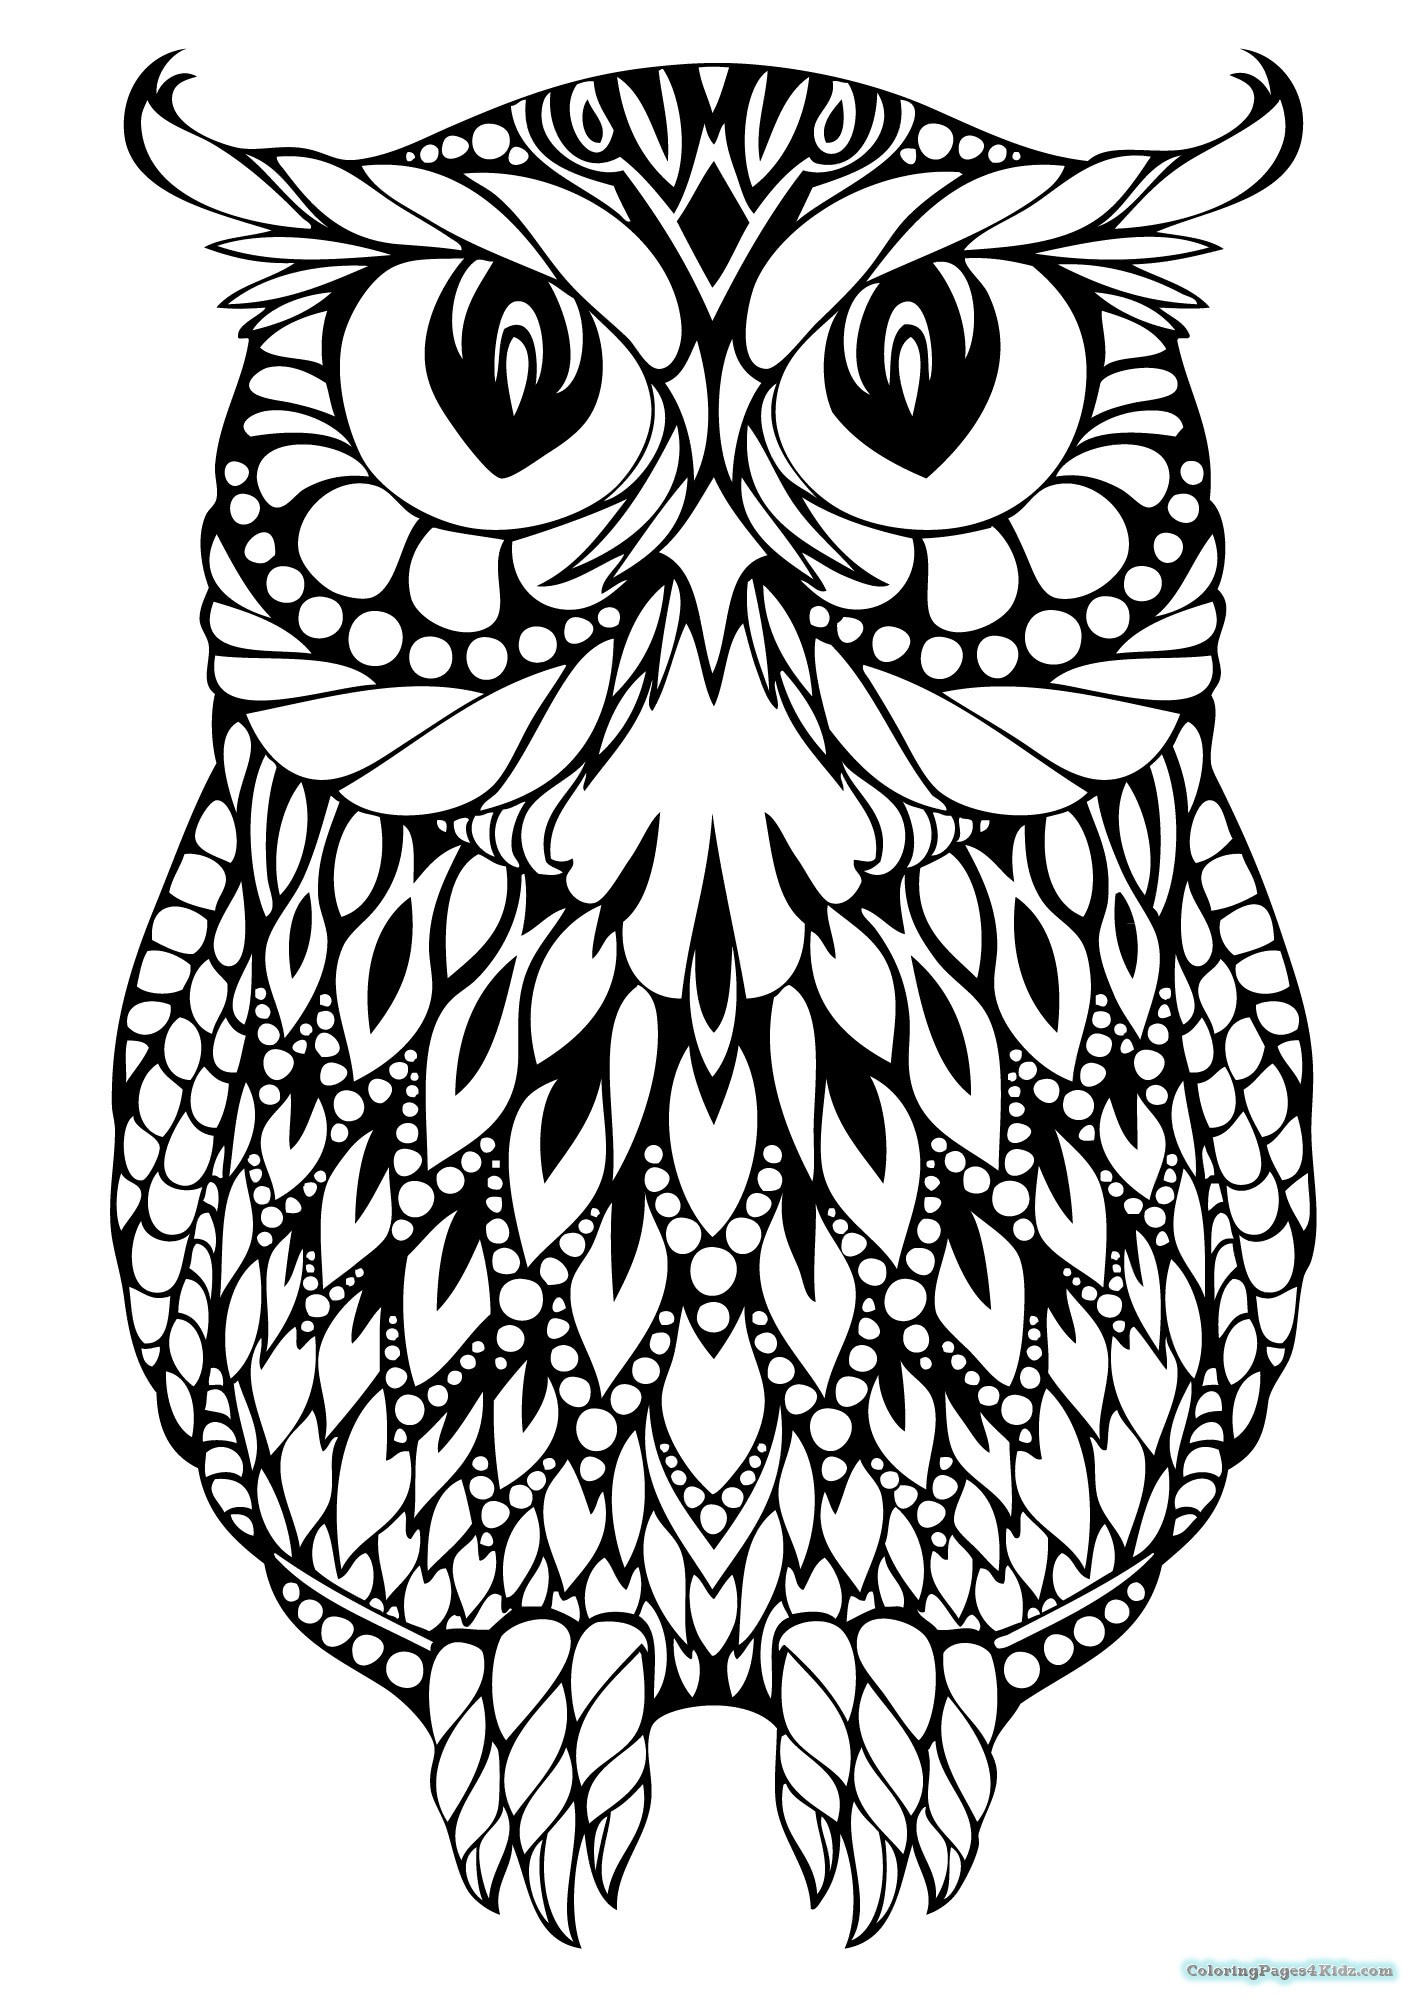 hard design coloring pages cool design coloring pages pizza hard coloring pages for hard pages design coloring